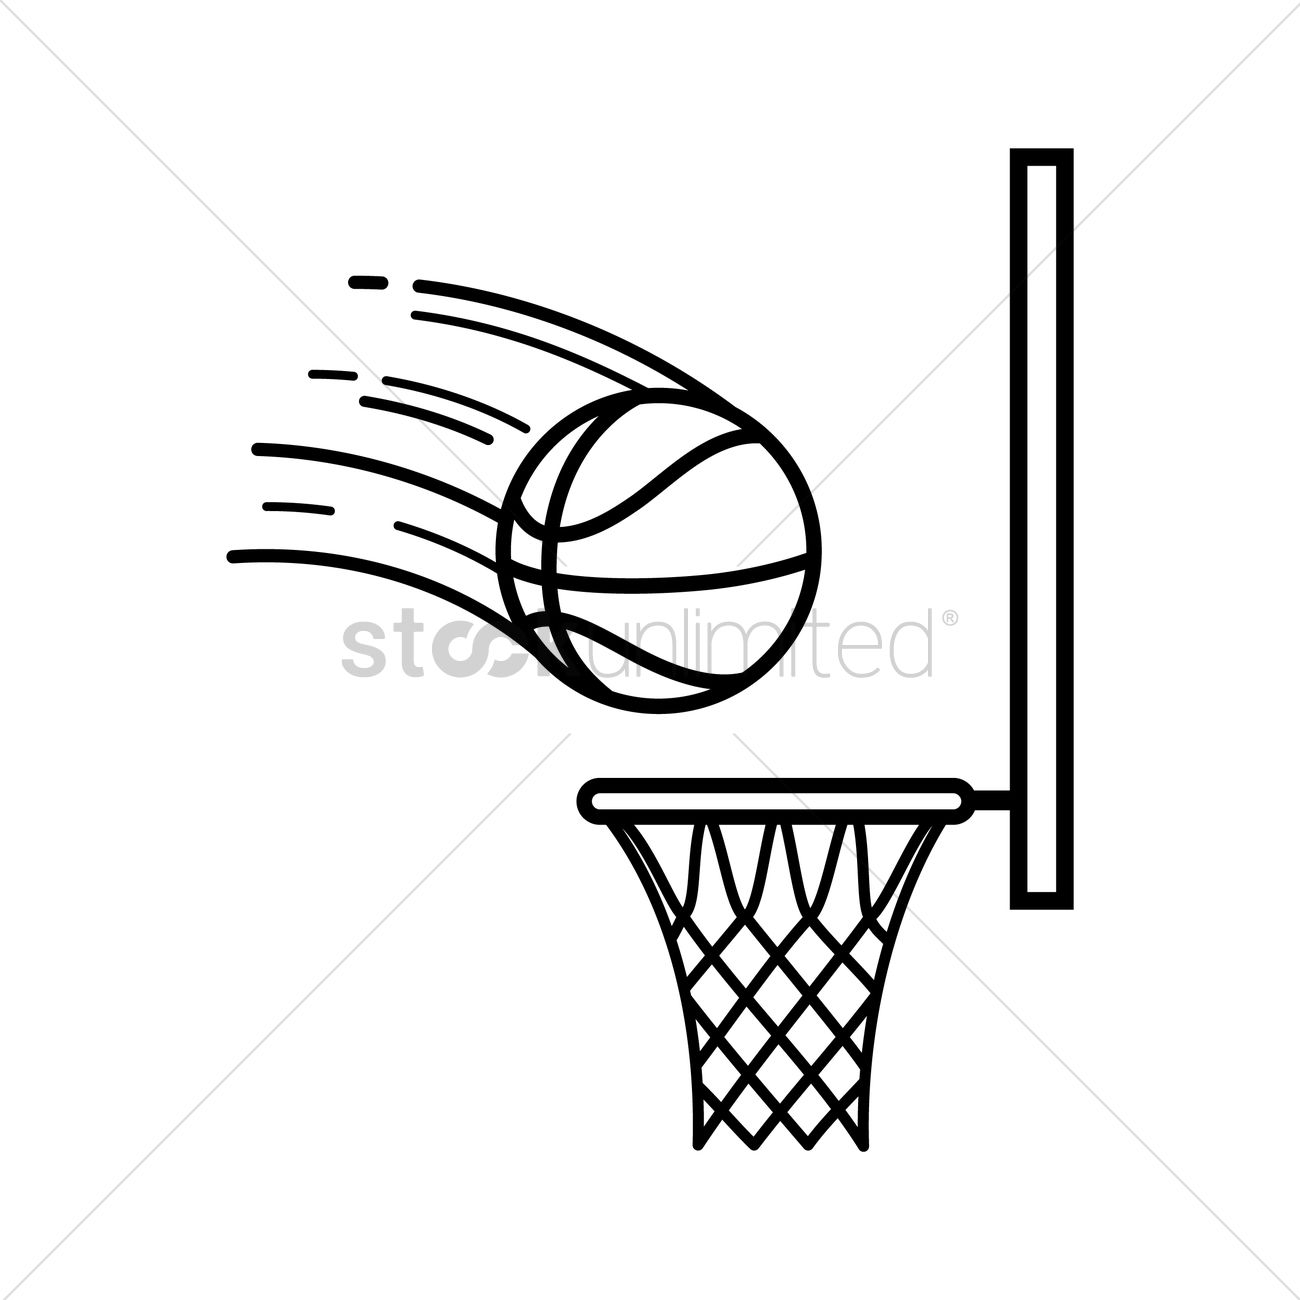 Basketball Going Into Hoop Vector Image